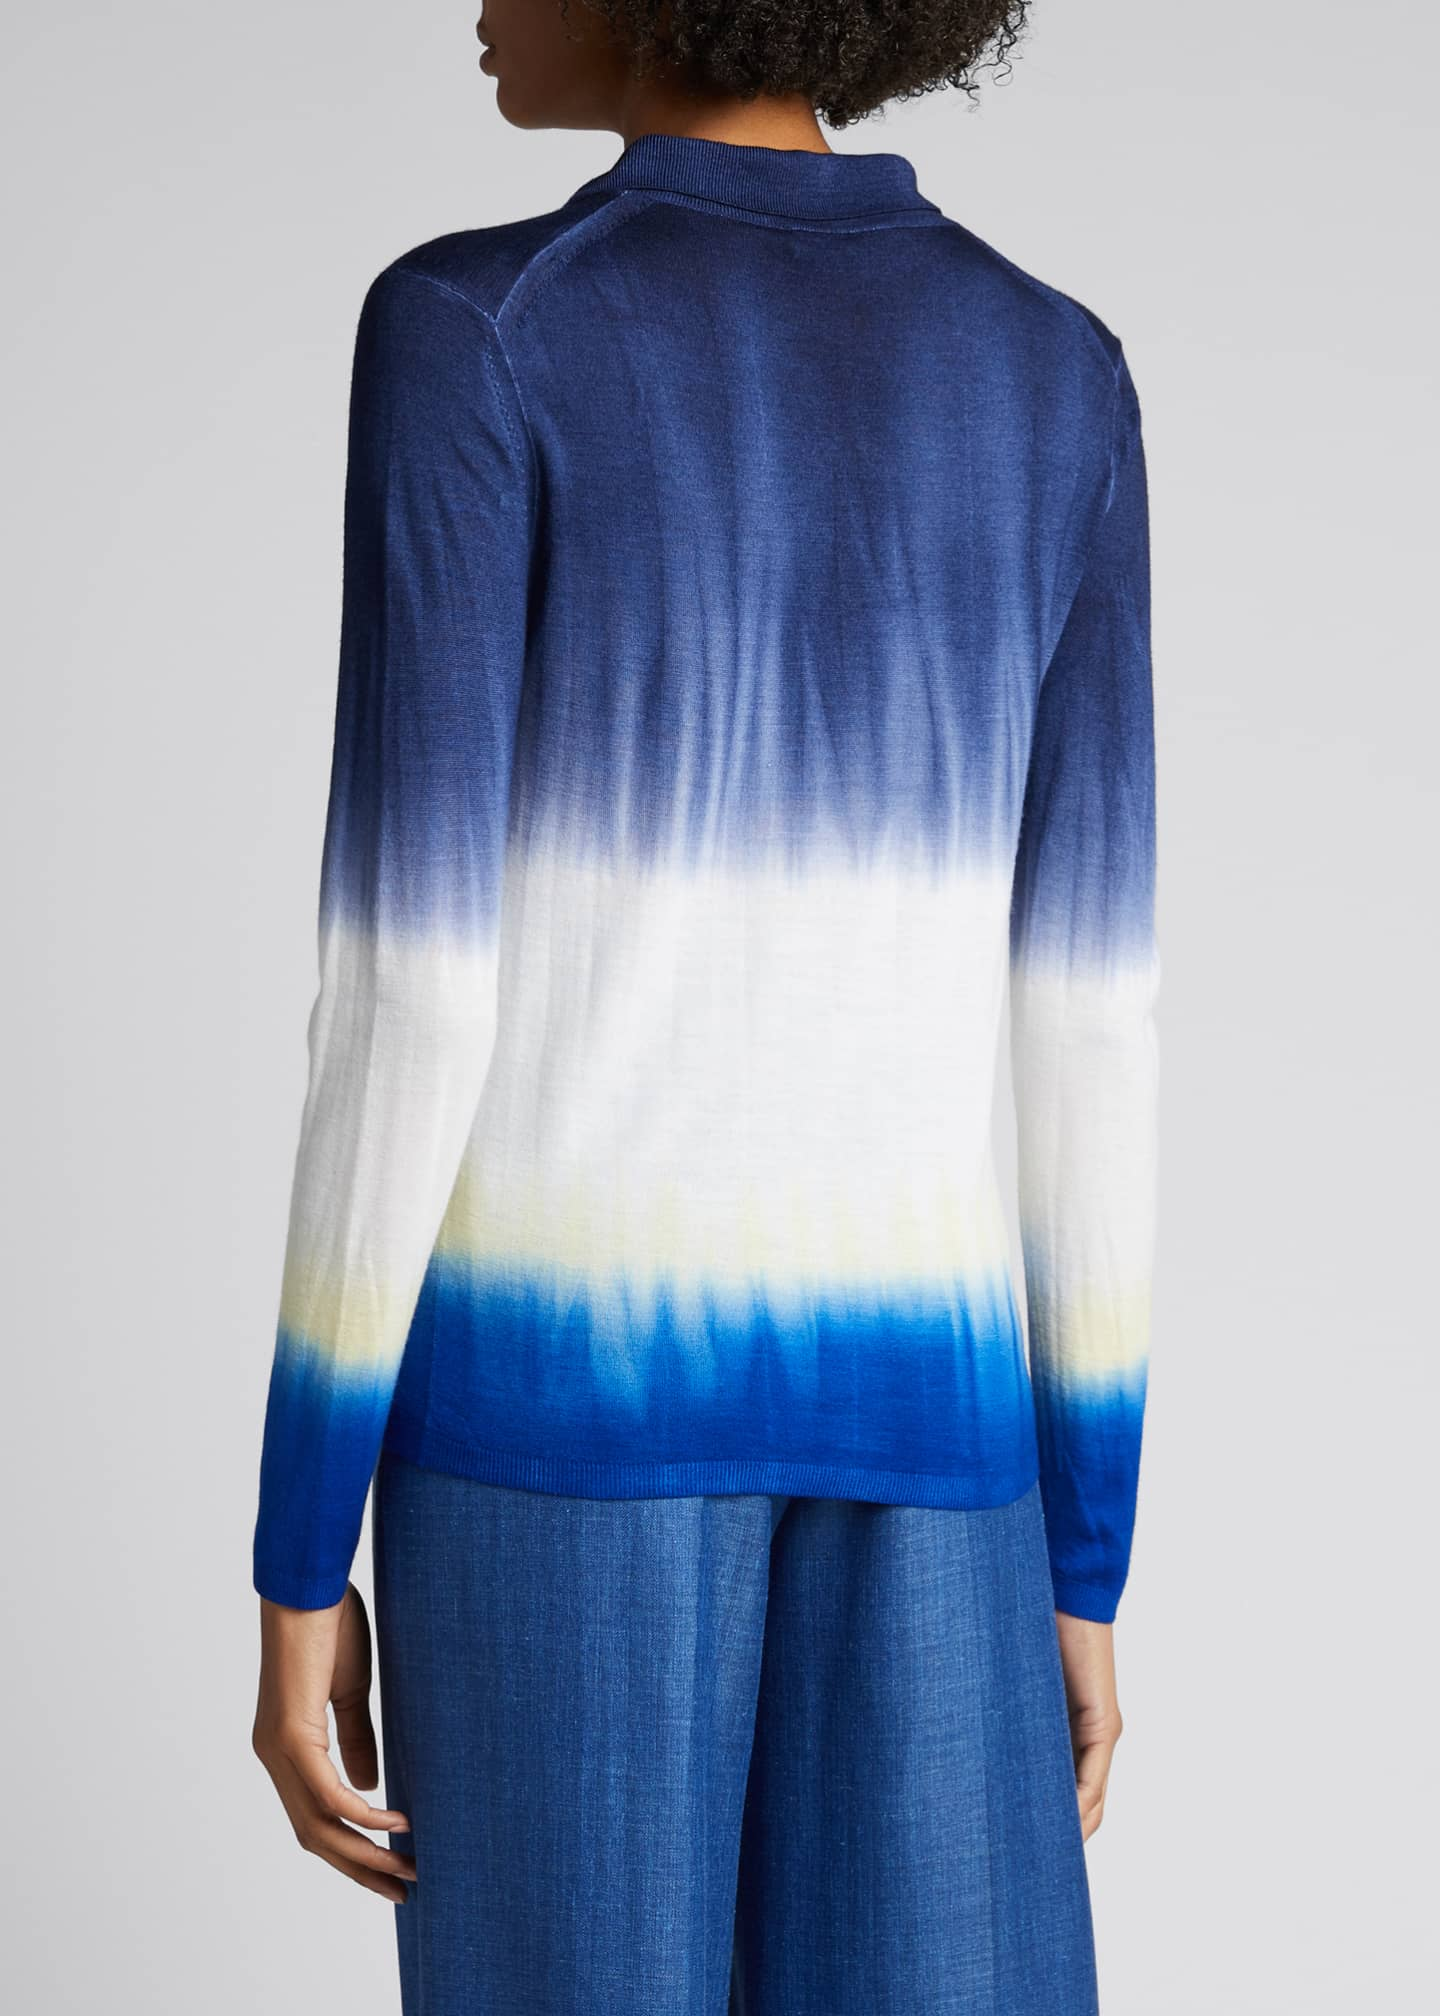 Image 2 of 5: Elaine Tie-Dye Cashmere Sweater